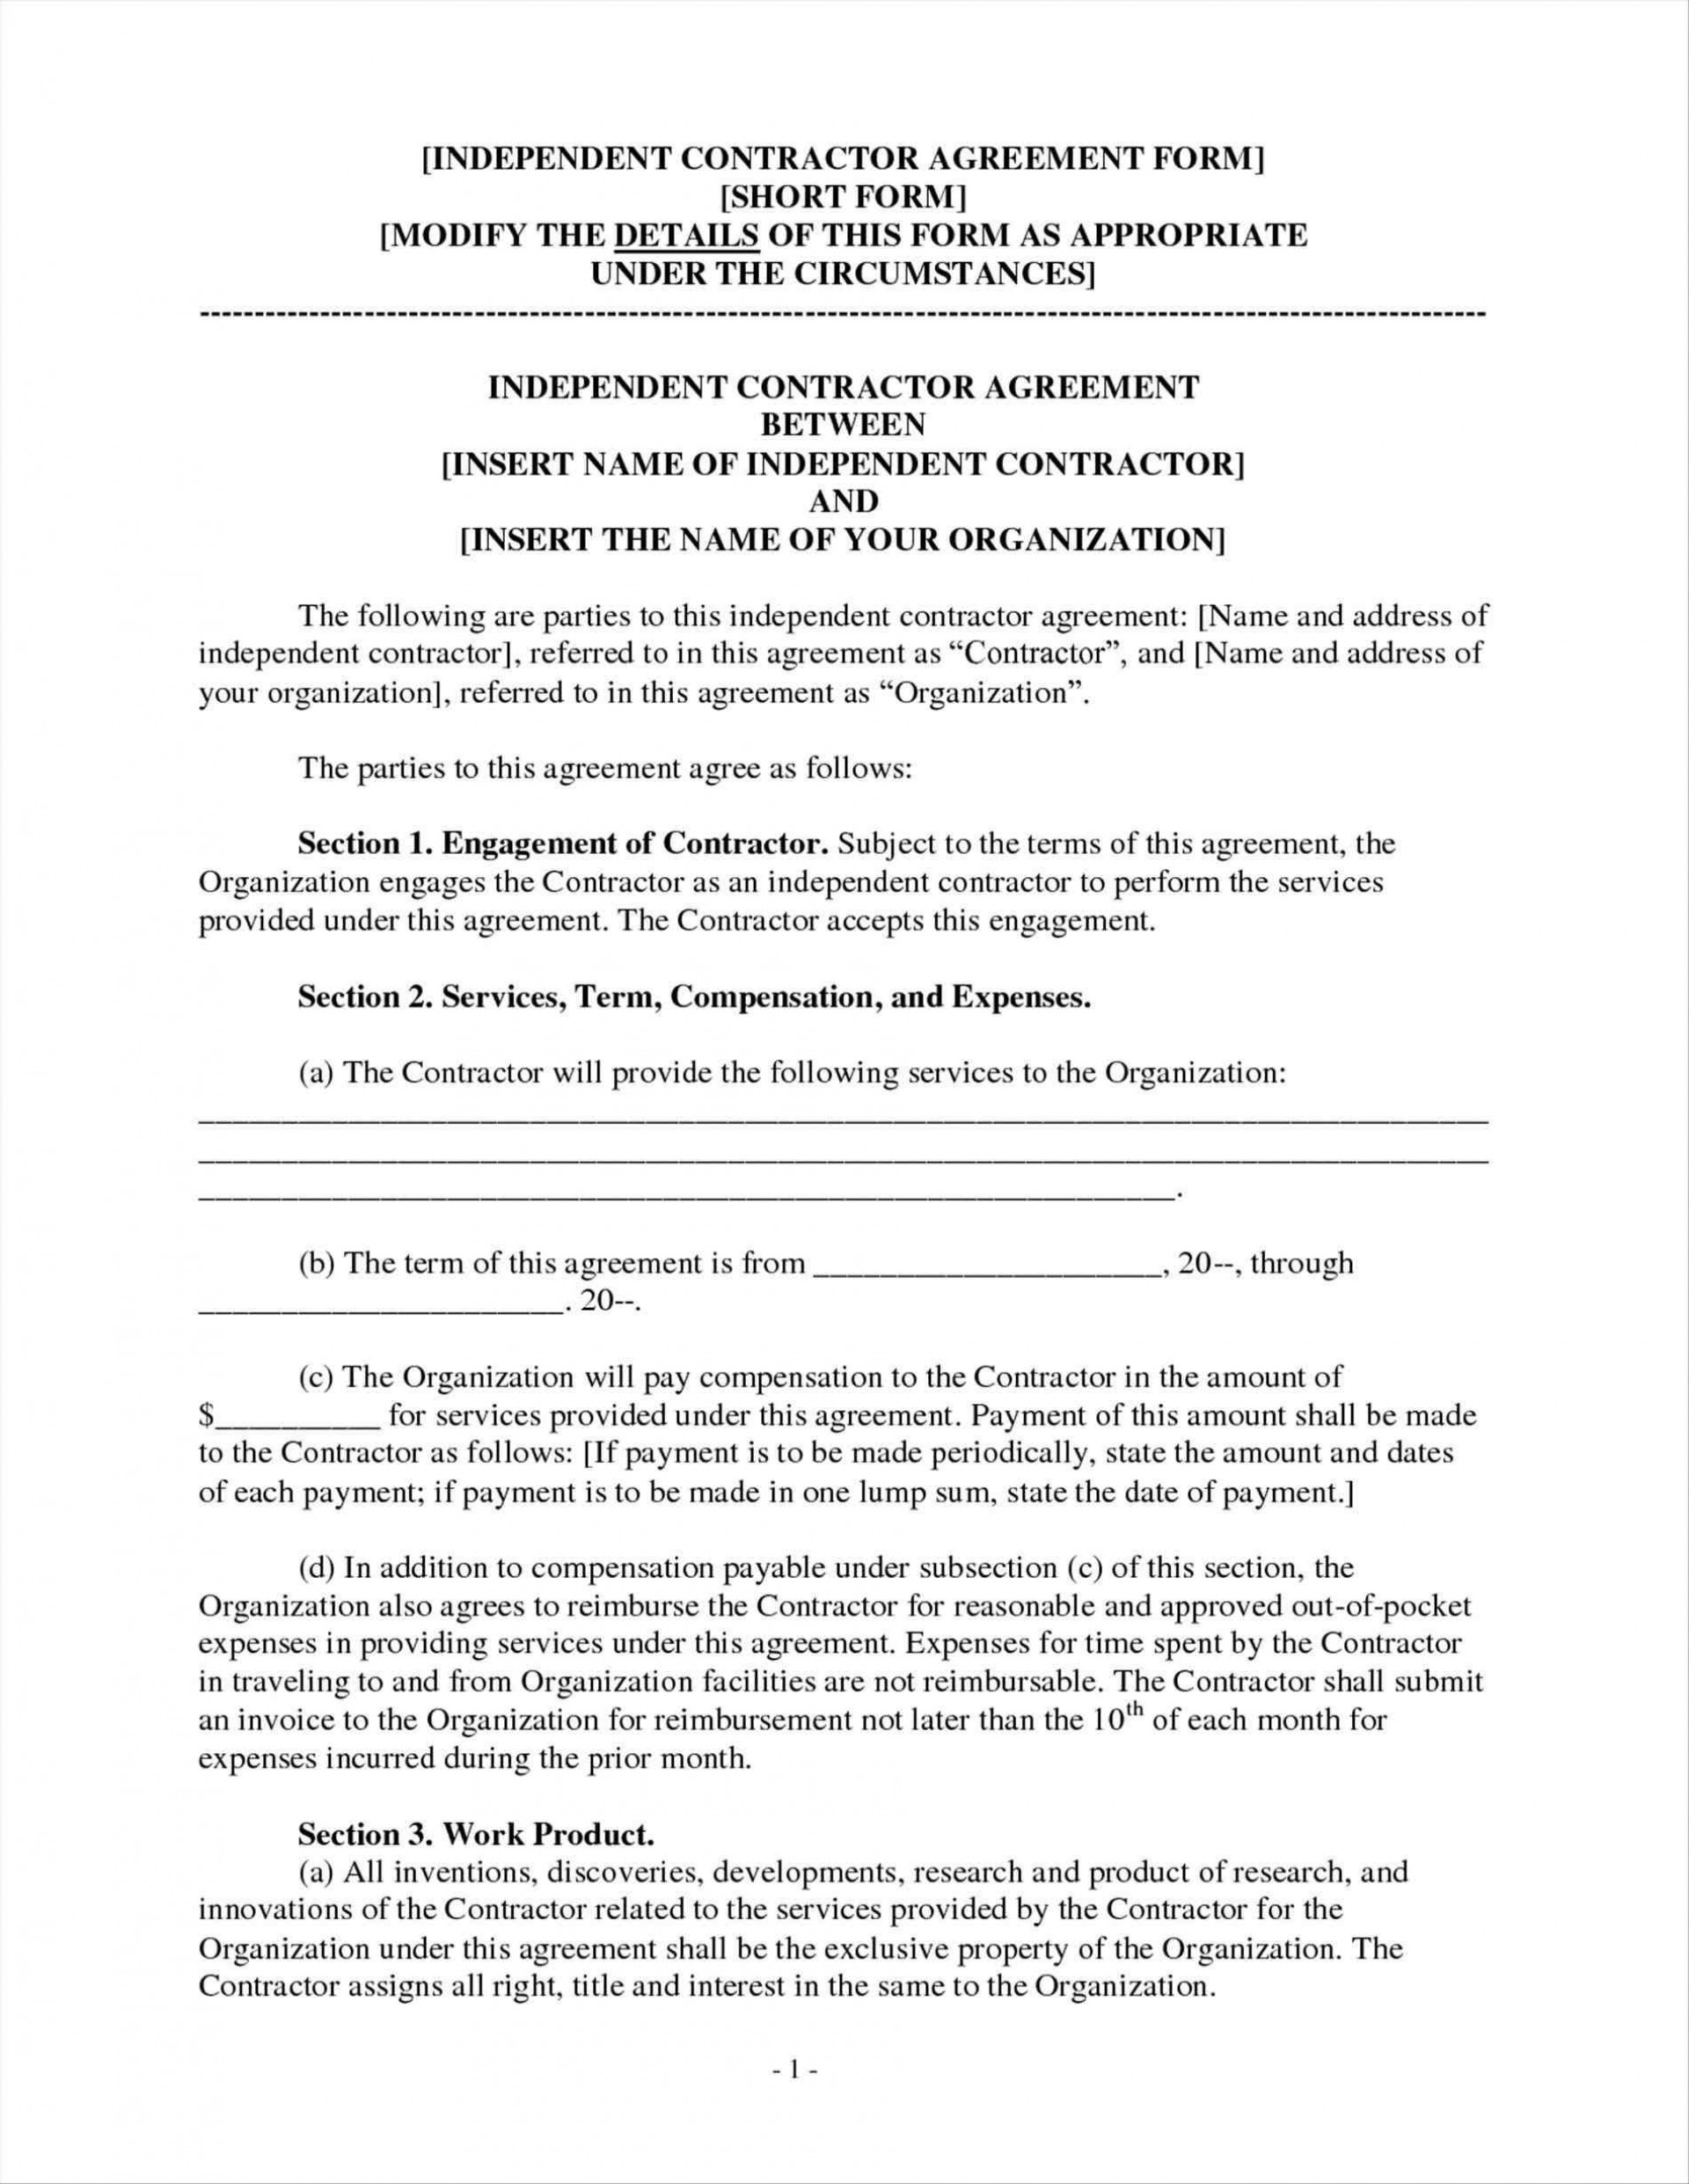 Independent Contractor Agreement Form Georgia